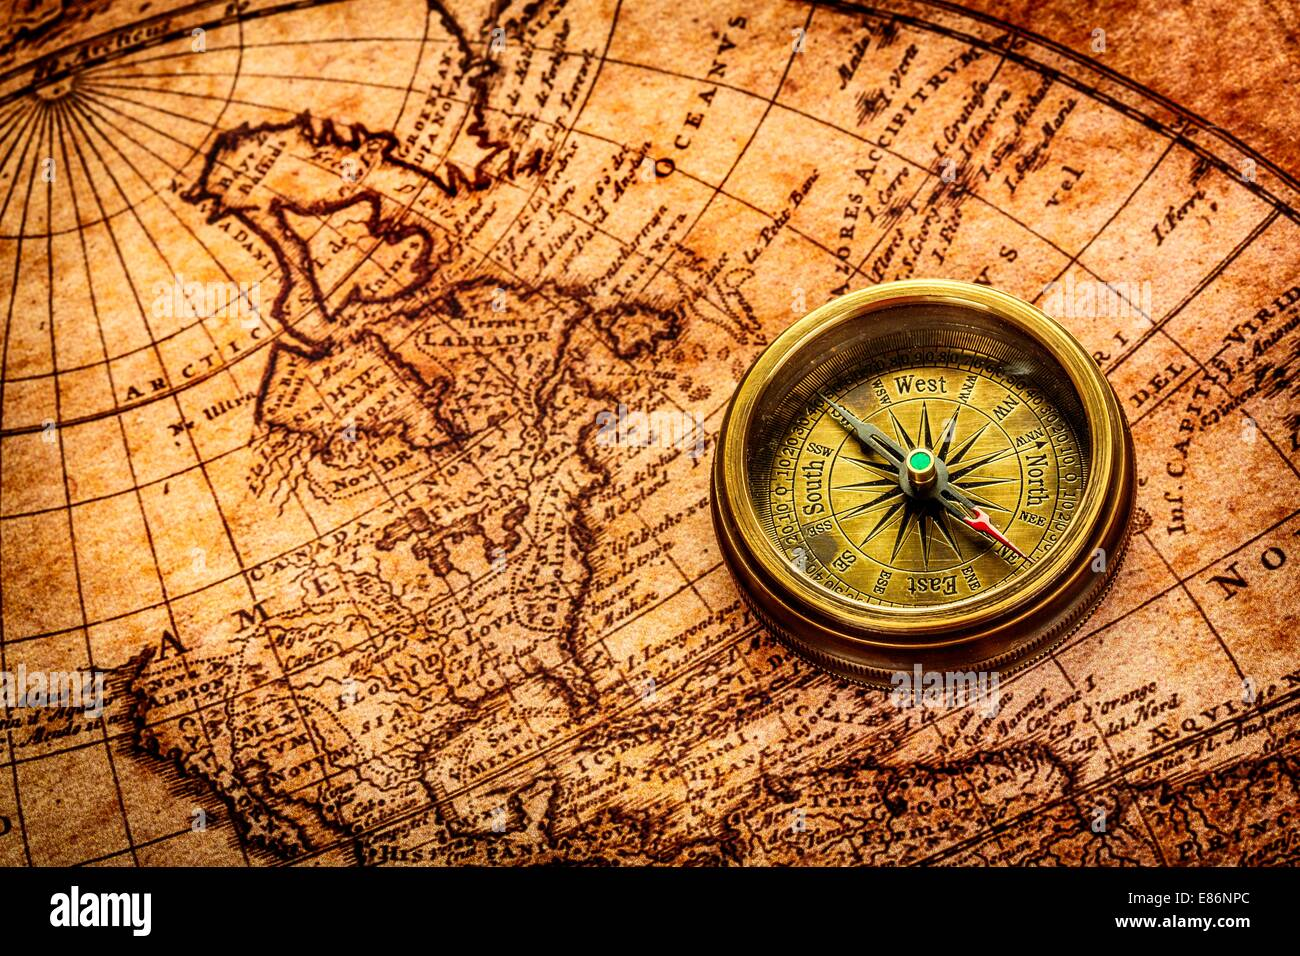 Vintage still life vintage compass lies on an ancient world map vintage compass lies on an ancient world map gumiabroncs Image collections